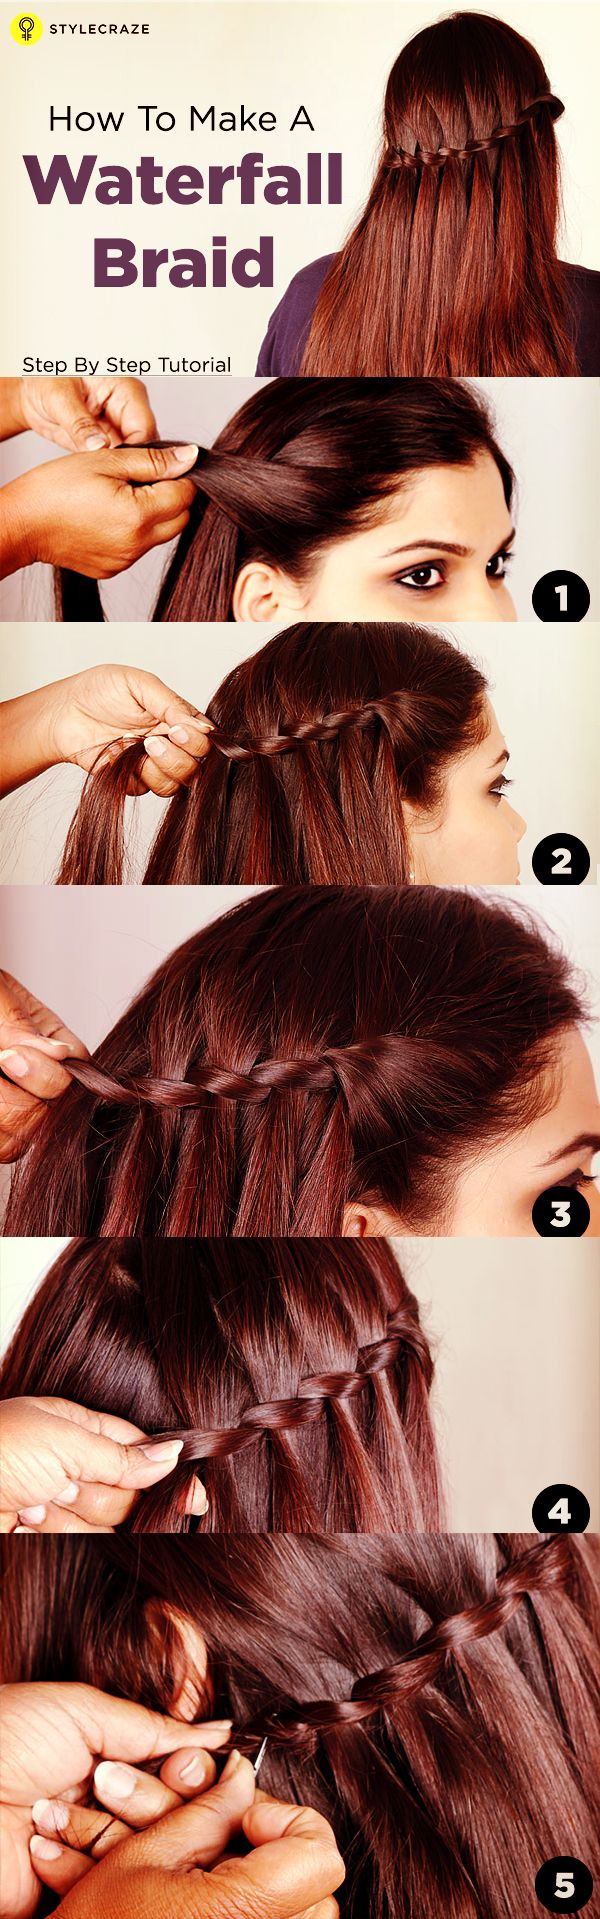 How To Make A Waterfall Braid: A Step By Step Tutorial